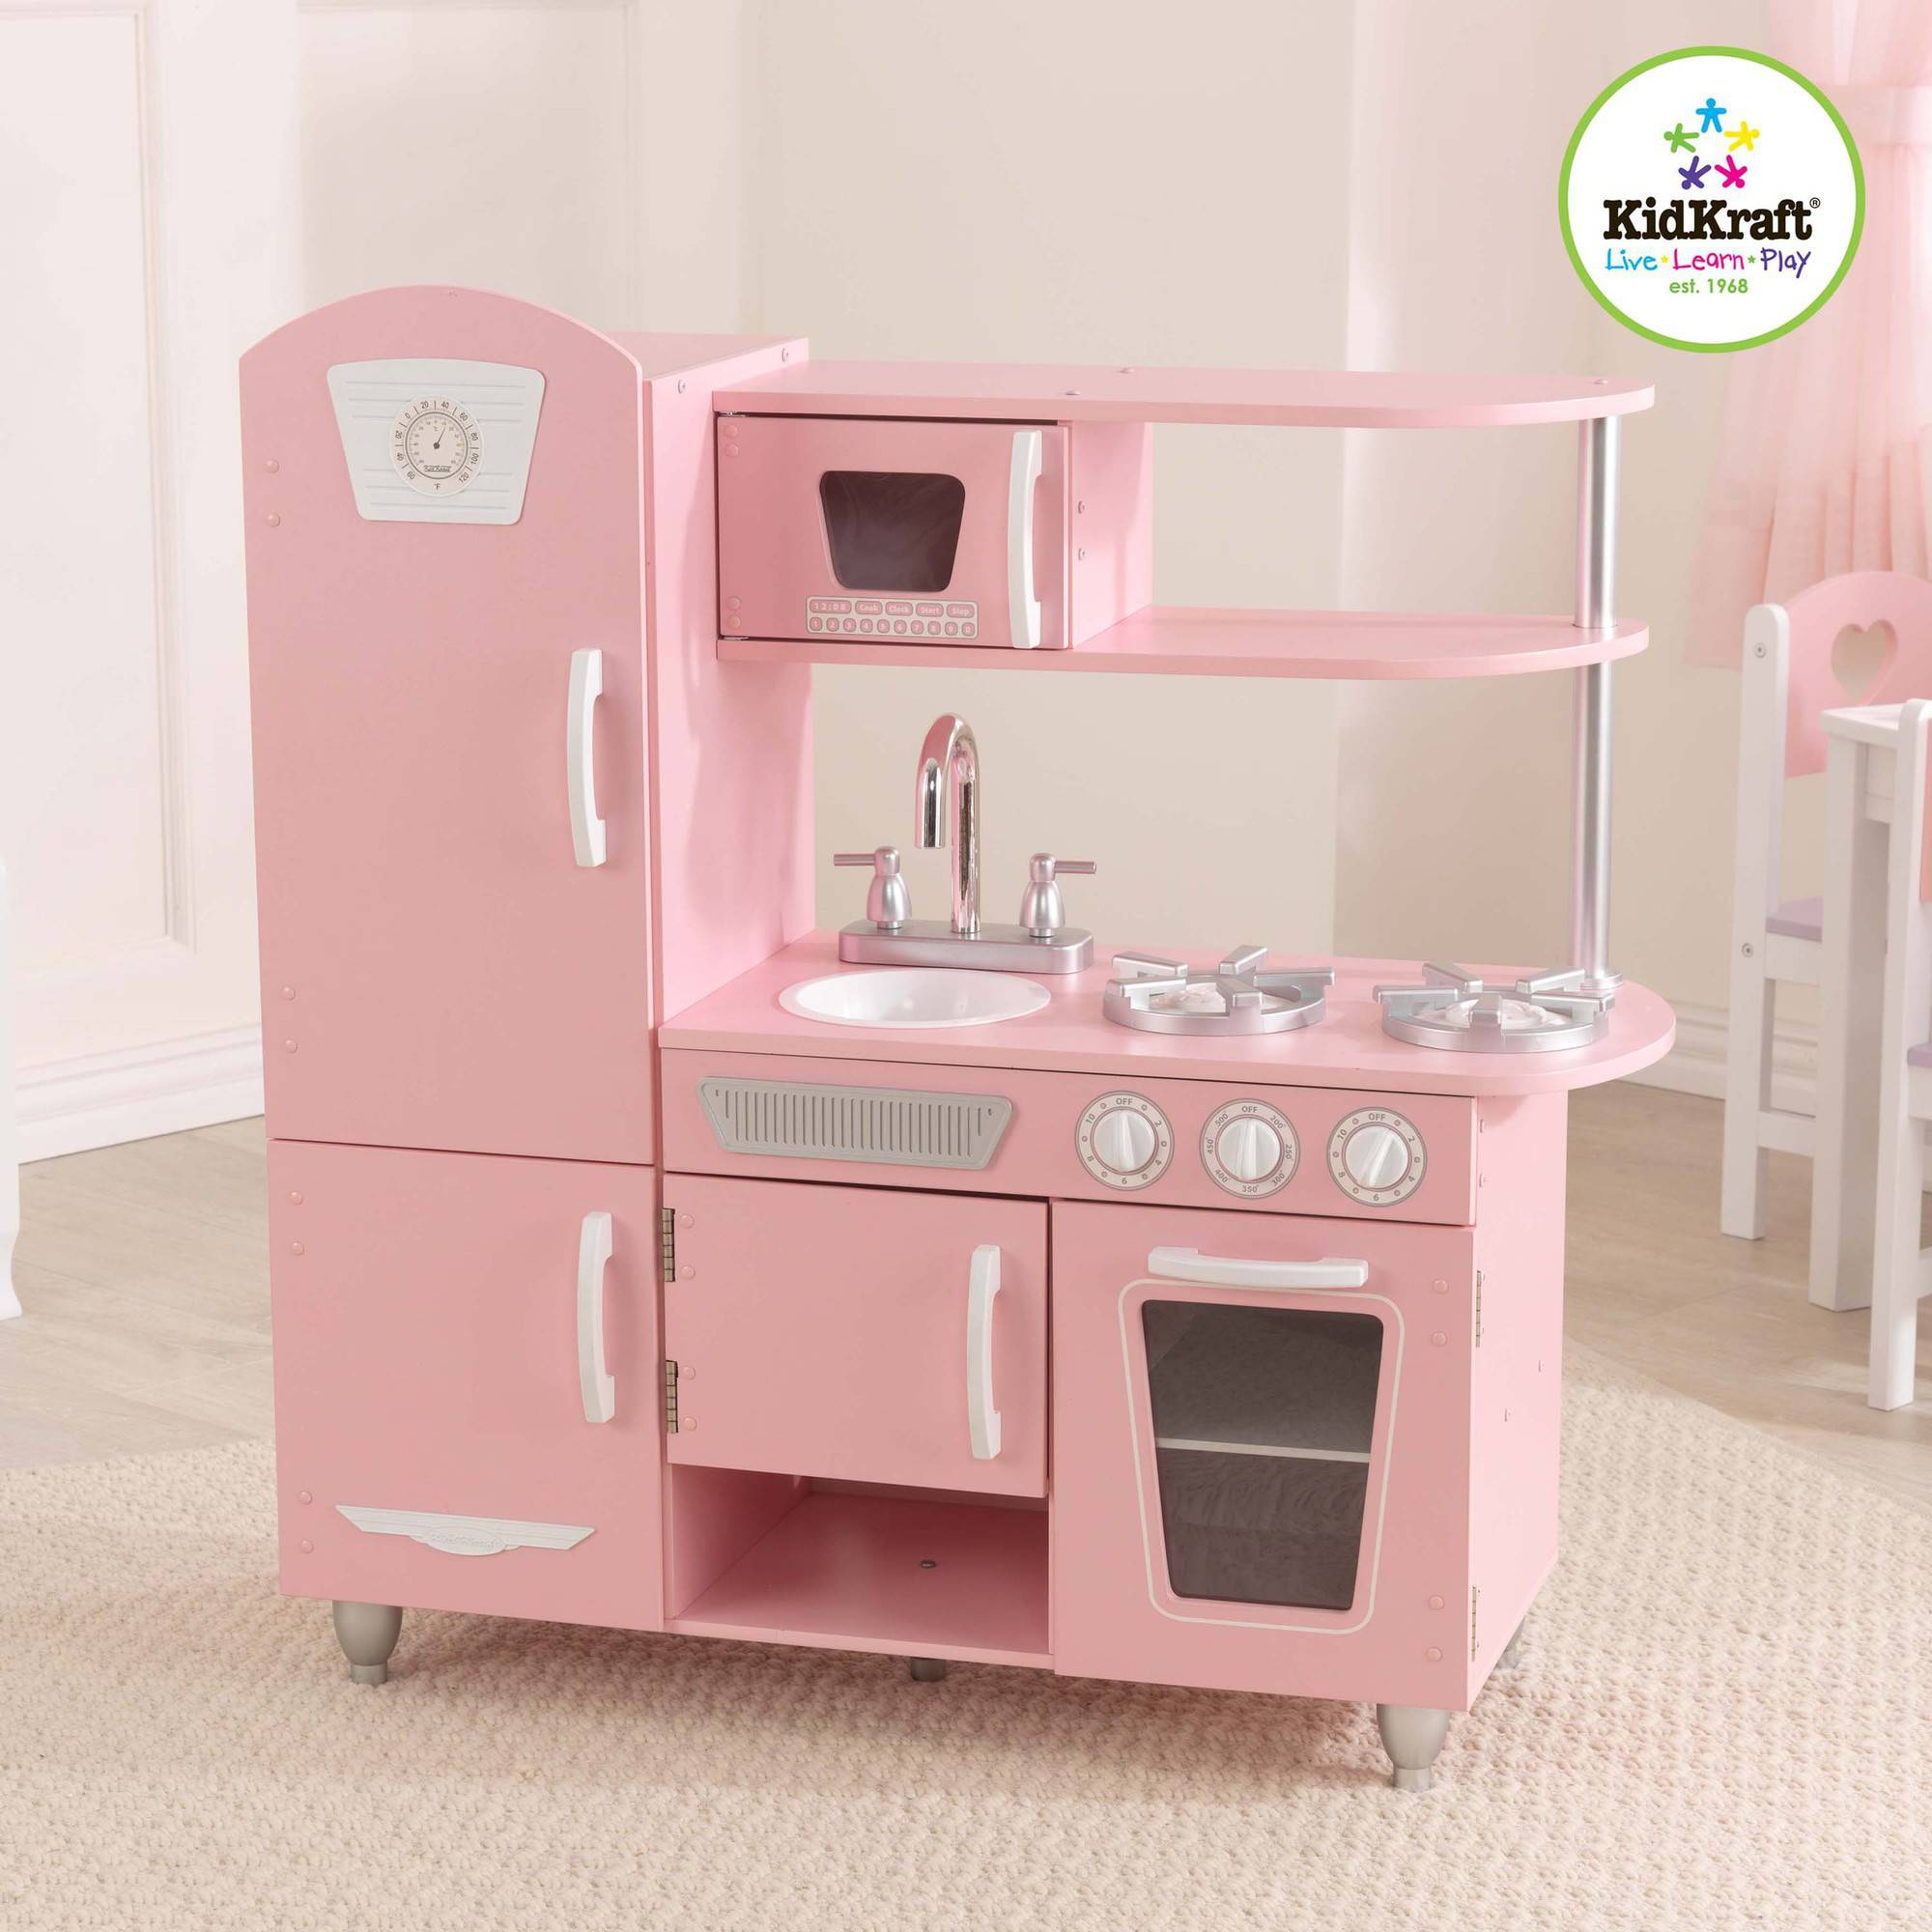 Vintage Kitchen By Kidkraft: KidKraft Vintage Wooden Play Kitchen, Pink